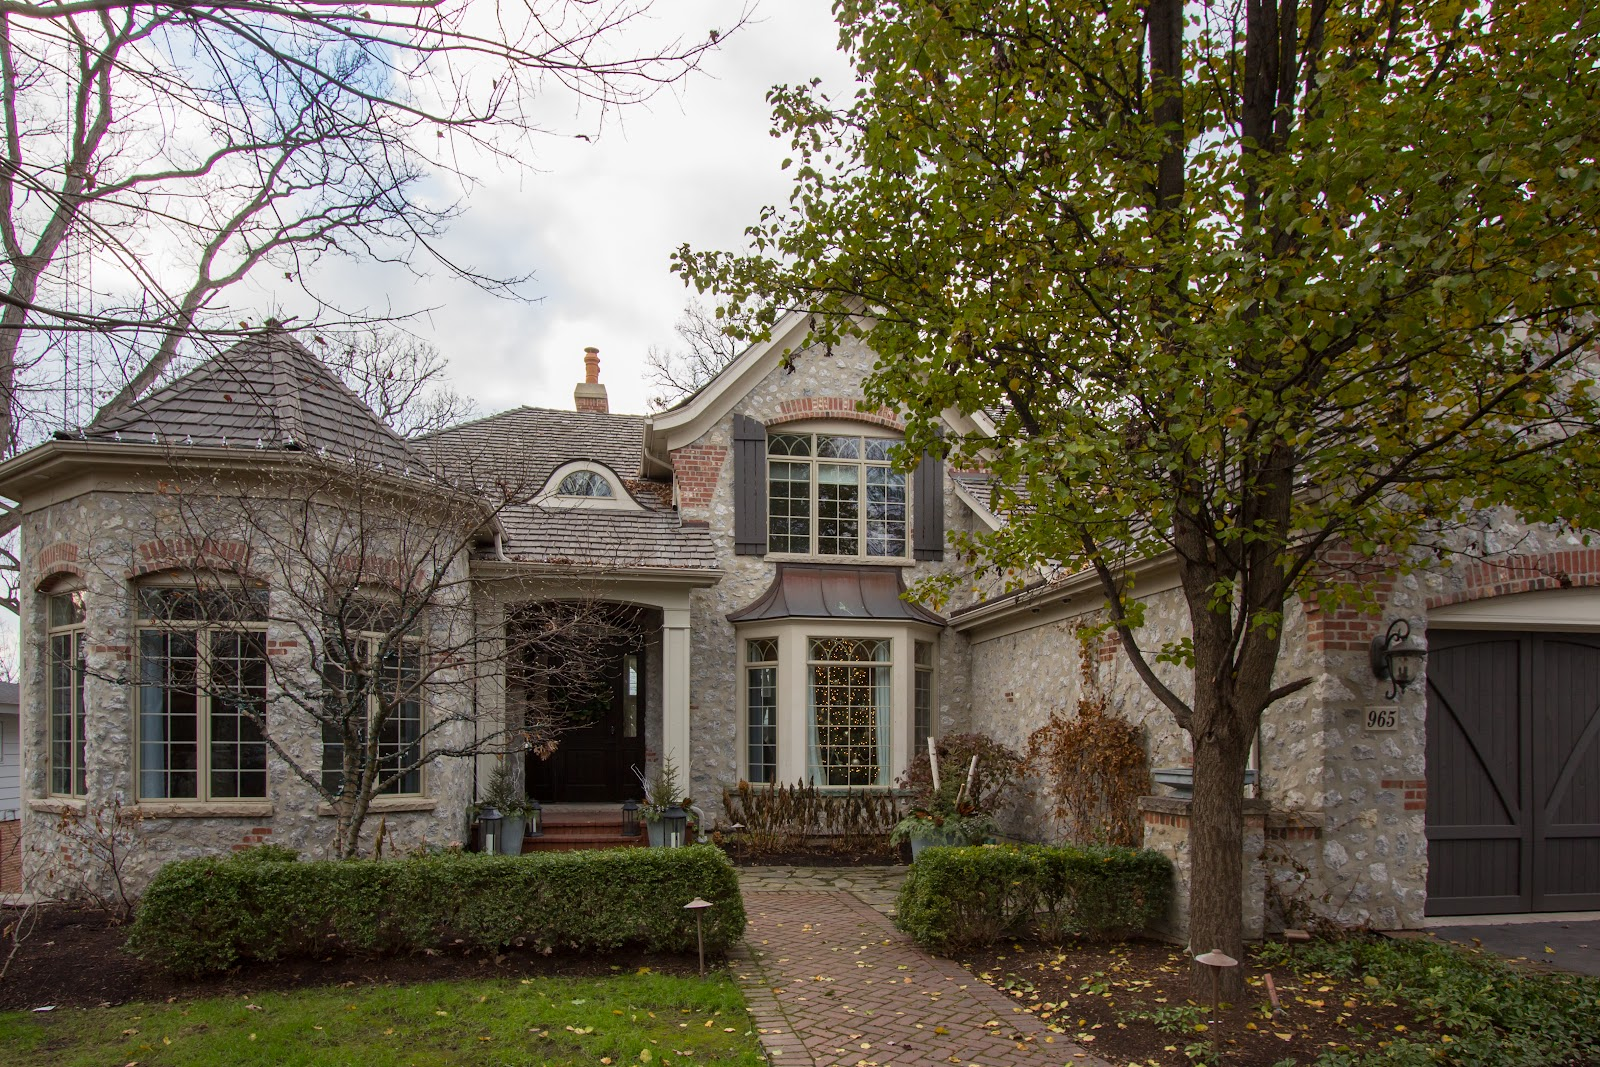 French Provincial Style Home in the autumn with entryway path and hedge